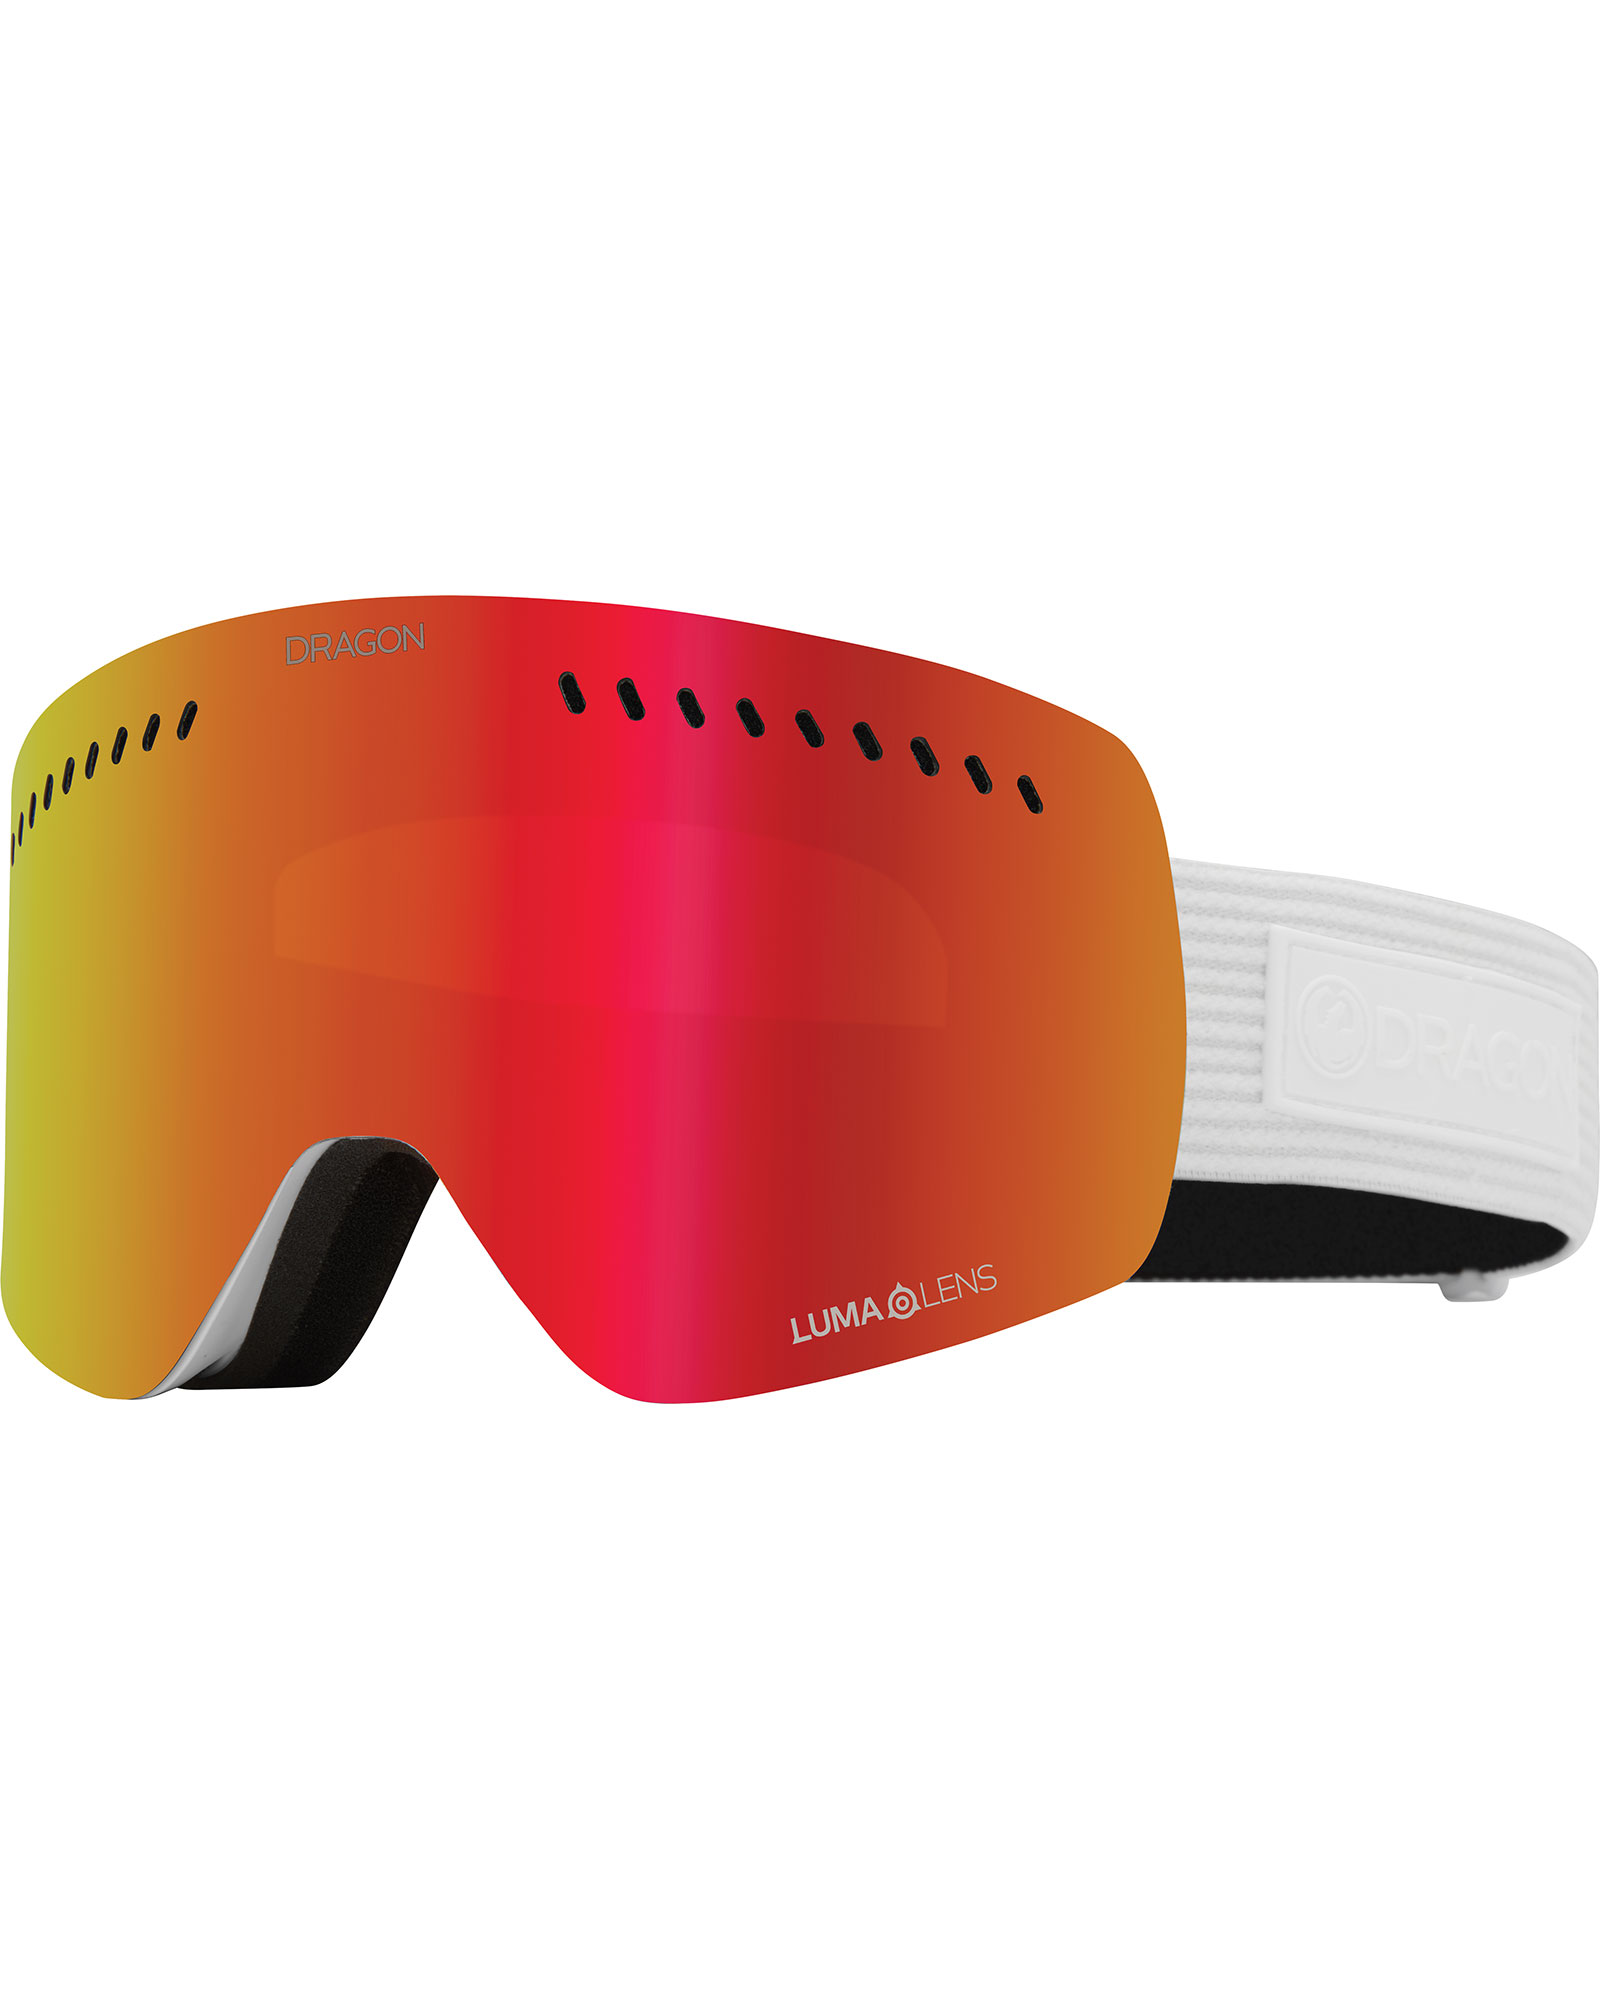 Dragon NFXs Corduroy / Lumalens Red Ionized + Lumalens Rose Goggles 2020 / 2021 0